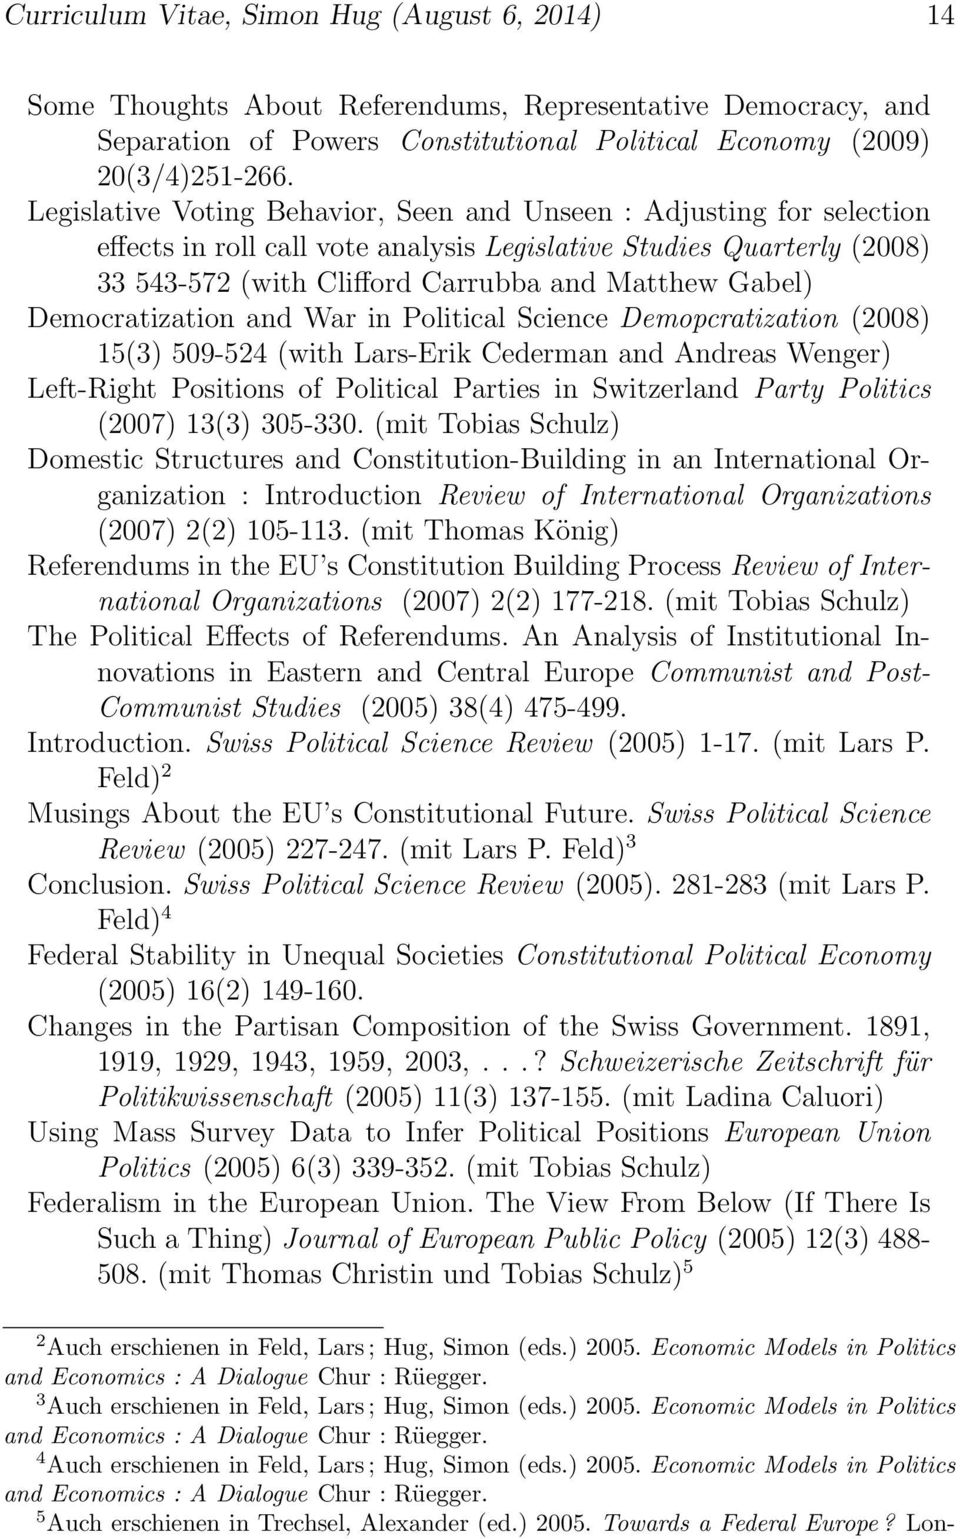 Democratization and War in Political Science Demopcratization (2008) 15(3) 509-524 (with Lars-Erik Cederman and Andreas Wenger) Left-Right Positions of Political Parties in Switzerland Party Politics